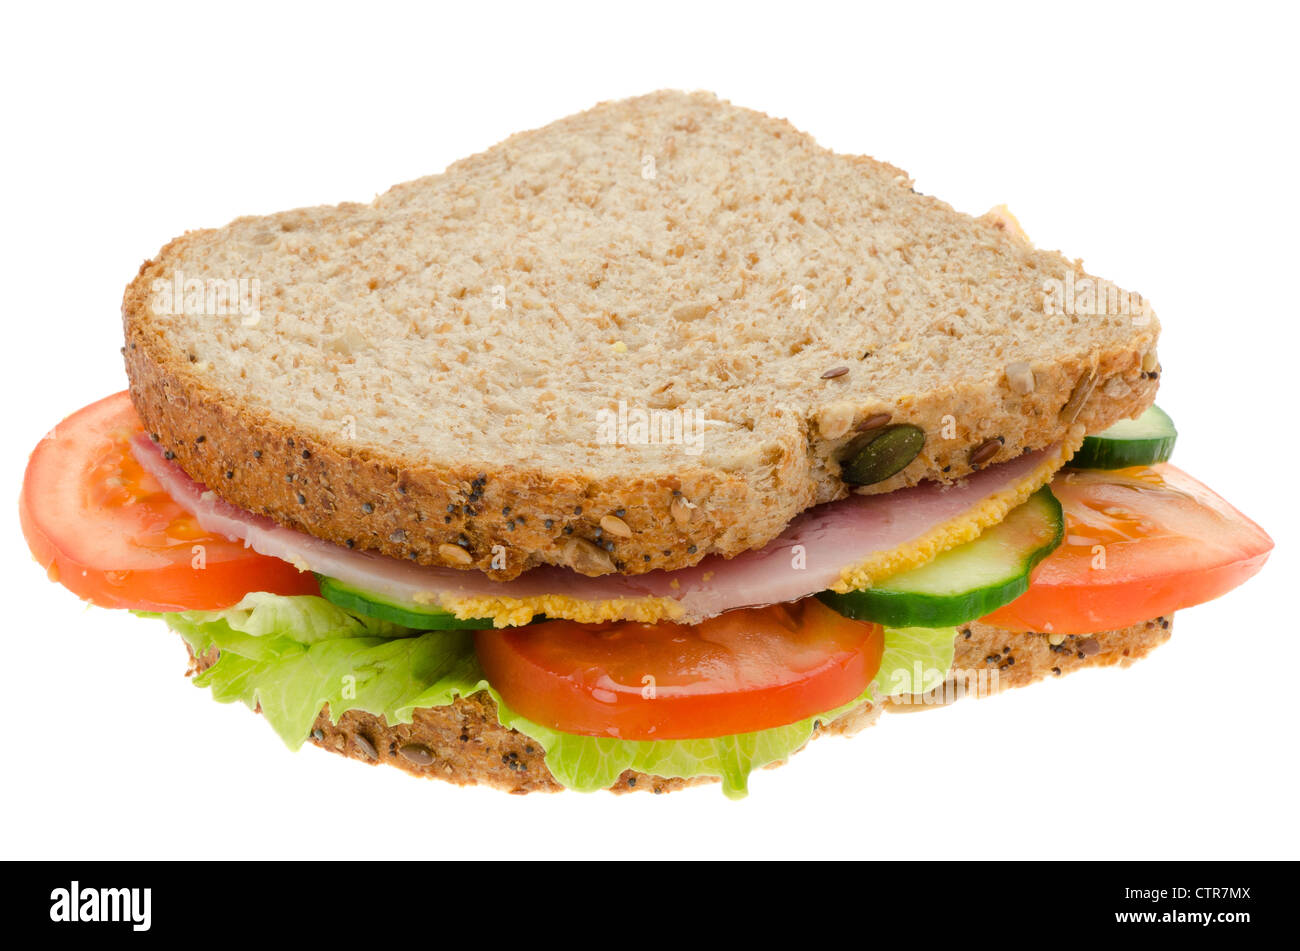 Fresh ham and salad sandwich with granary bread - studio shot with a white background - Stock Image